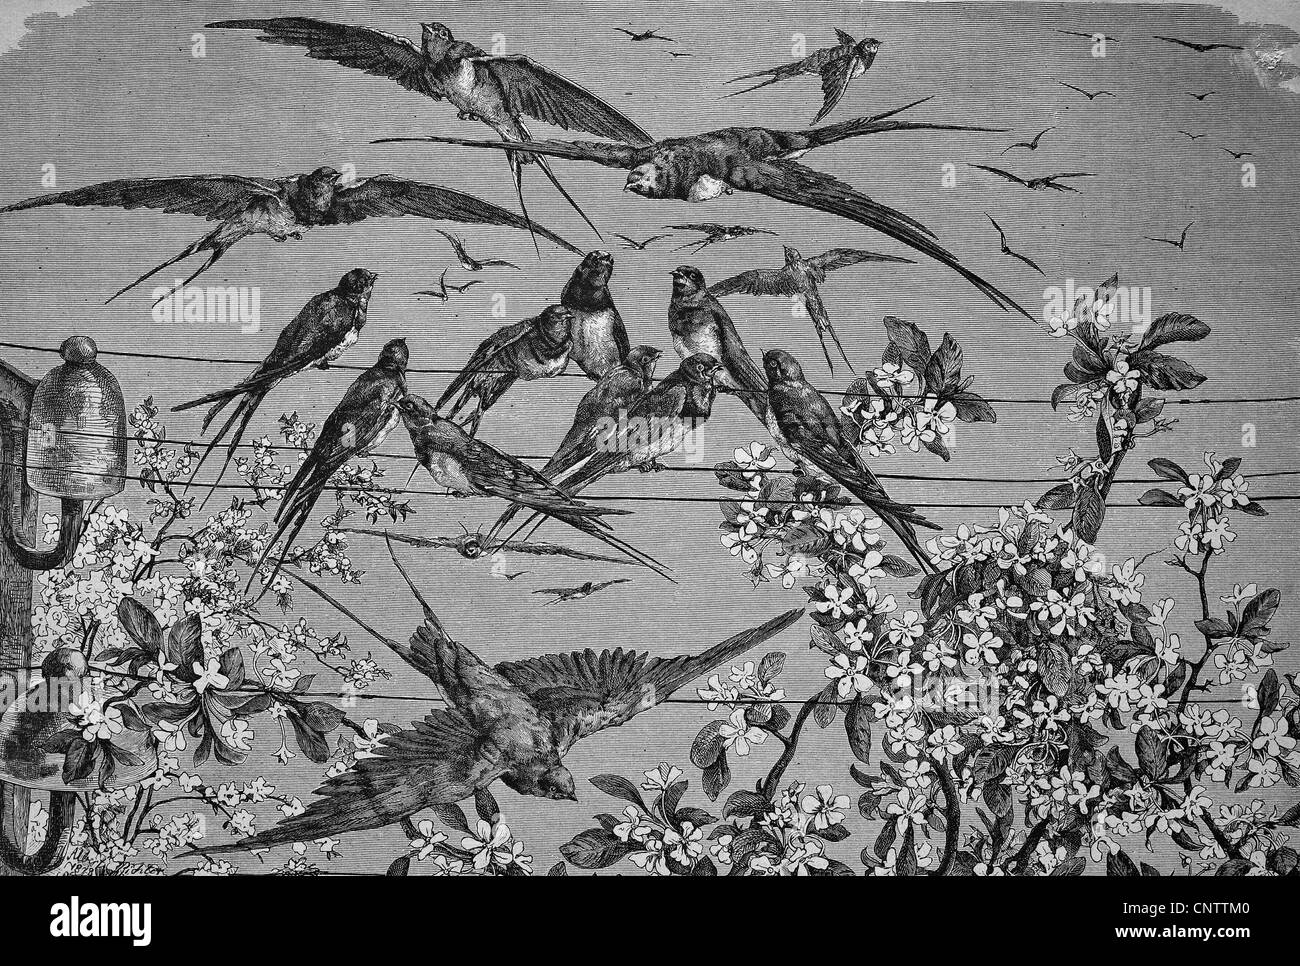 Swallows in the spring, historical engraving, 1869 - Stock Image